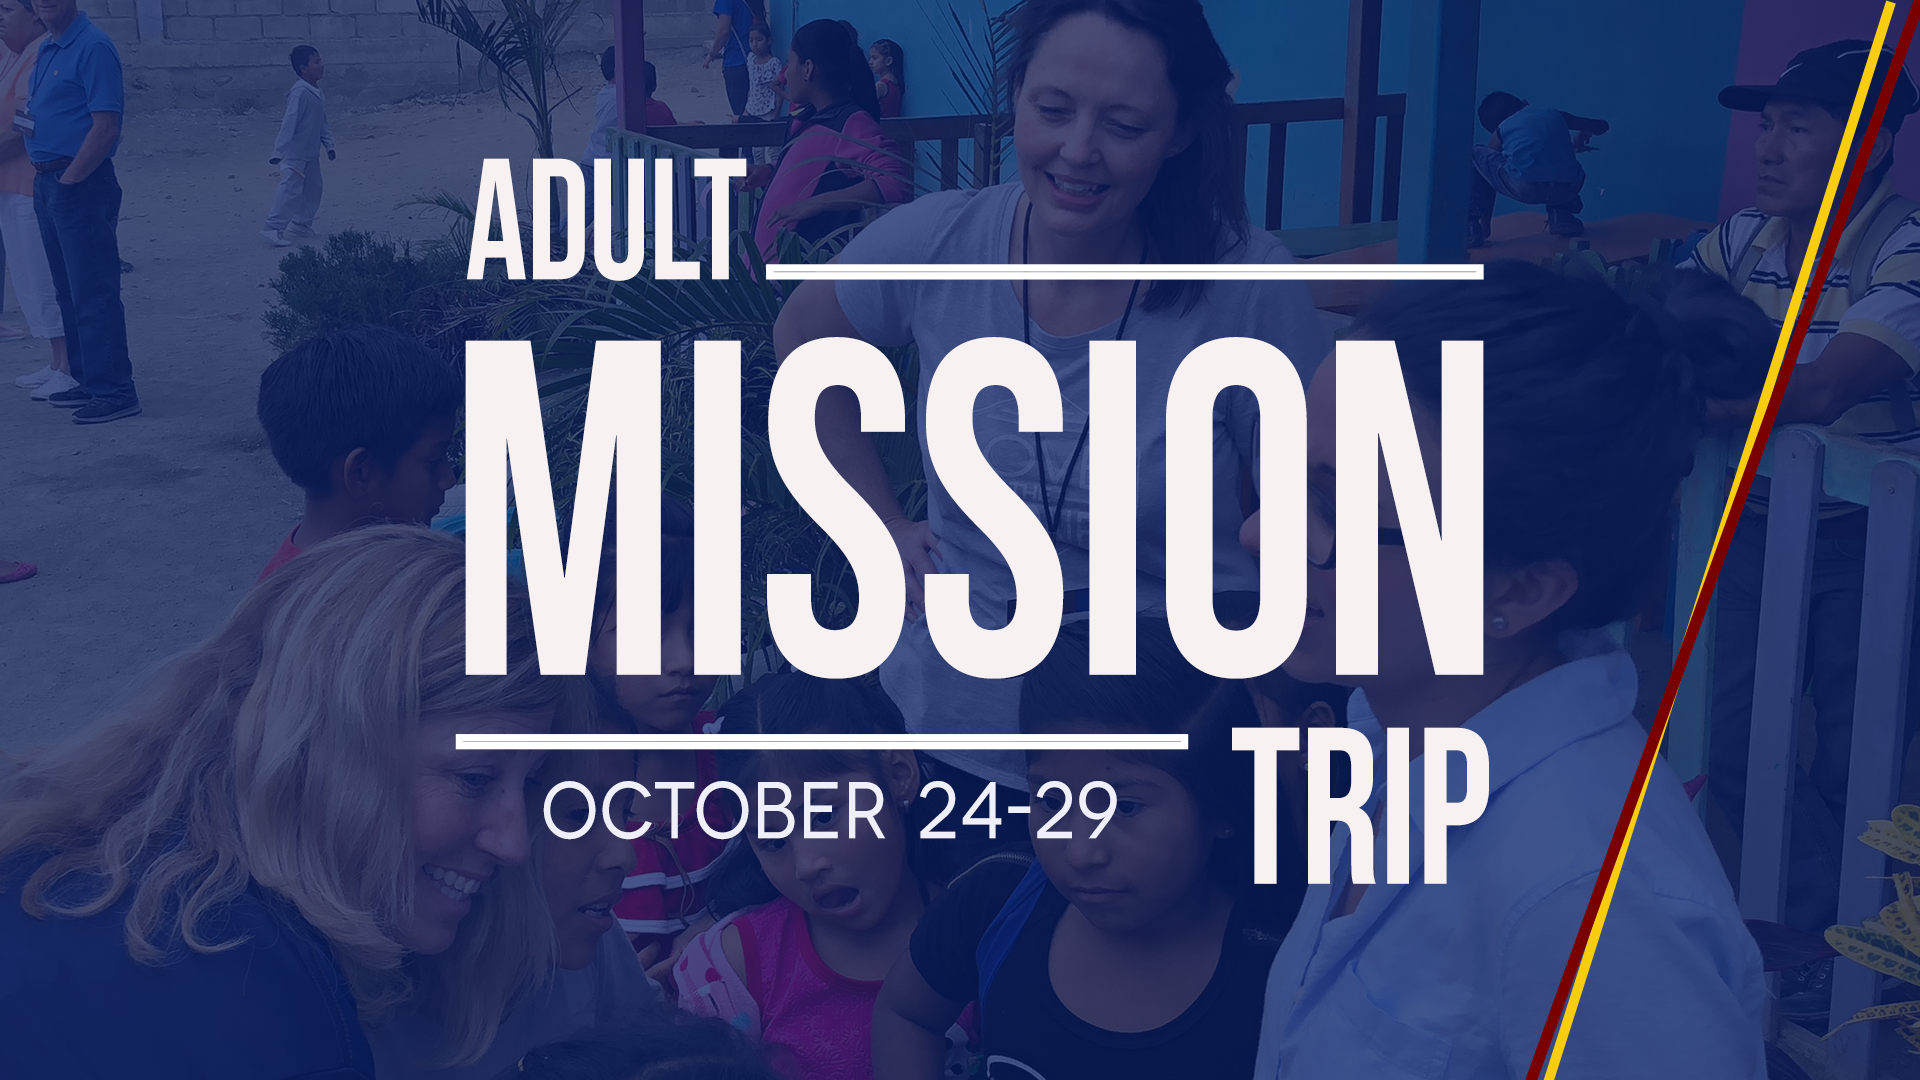 2019 mission trip slide no meeting image